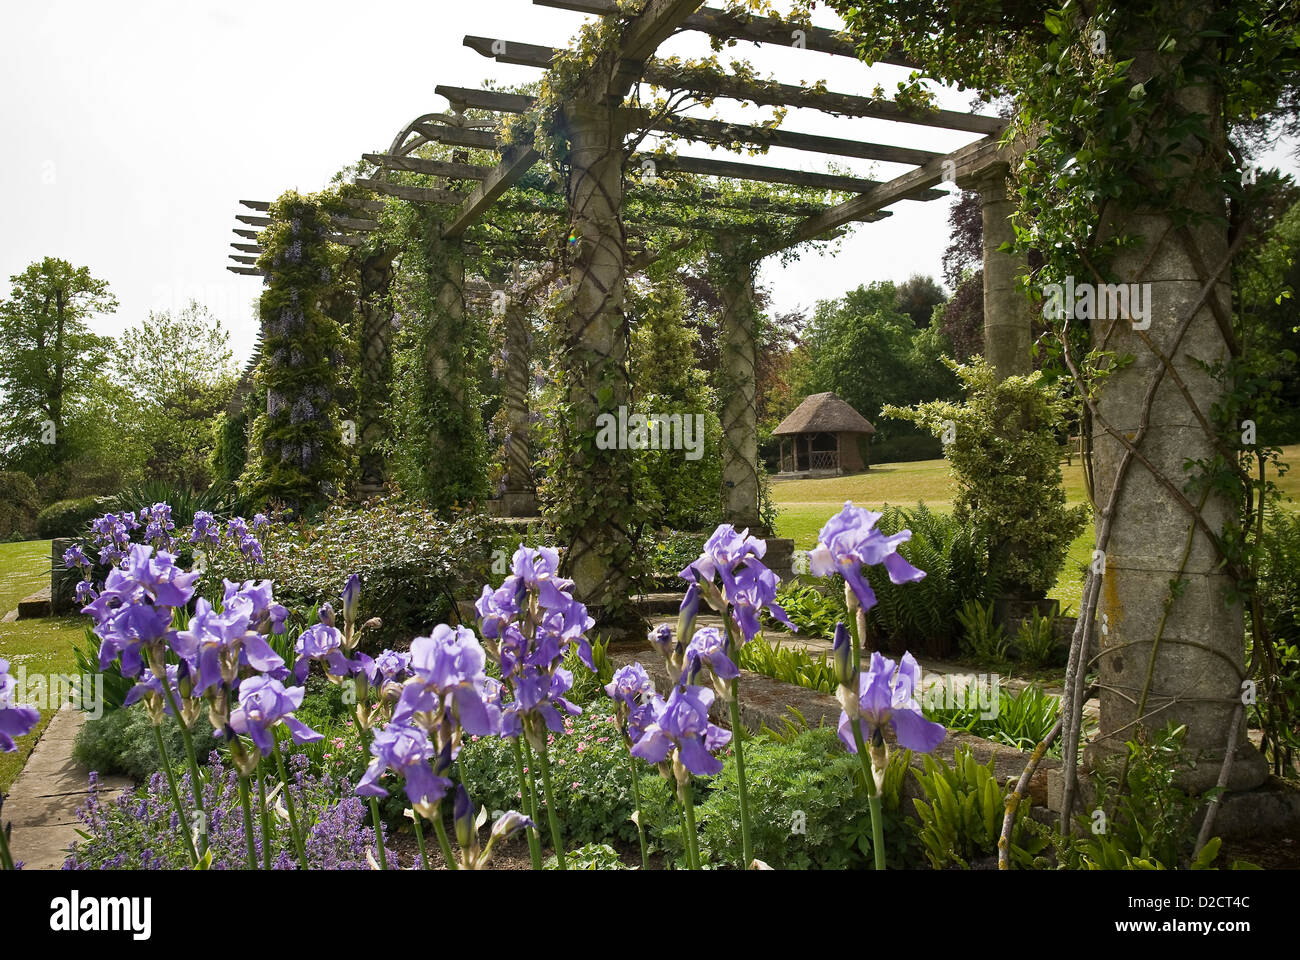 Wooden trellis or arbor and flowers at West Dean Gardens Chichester